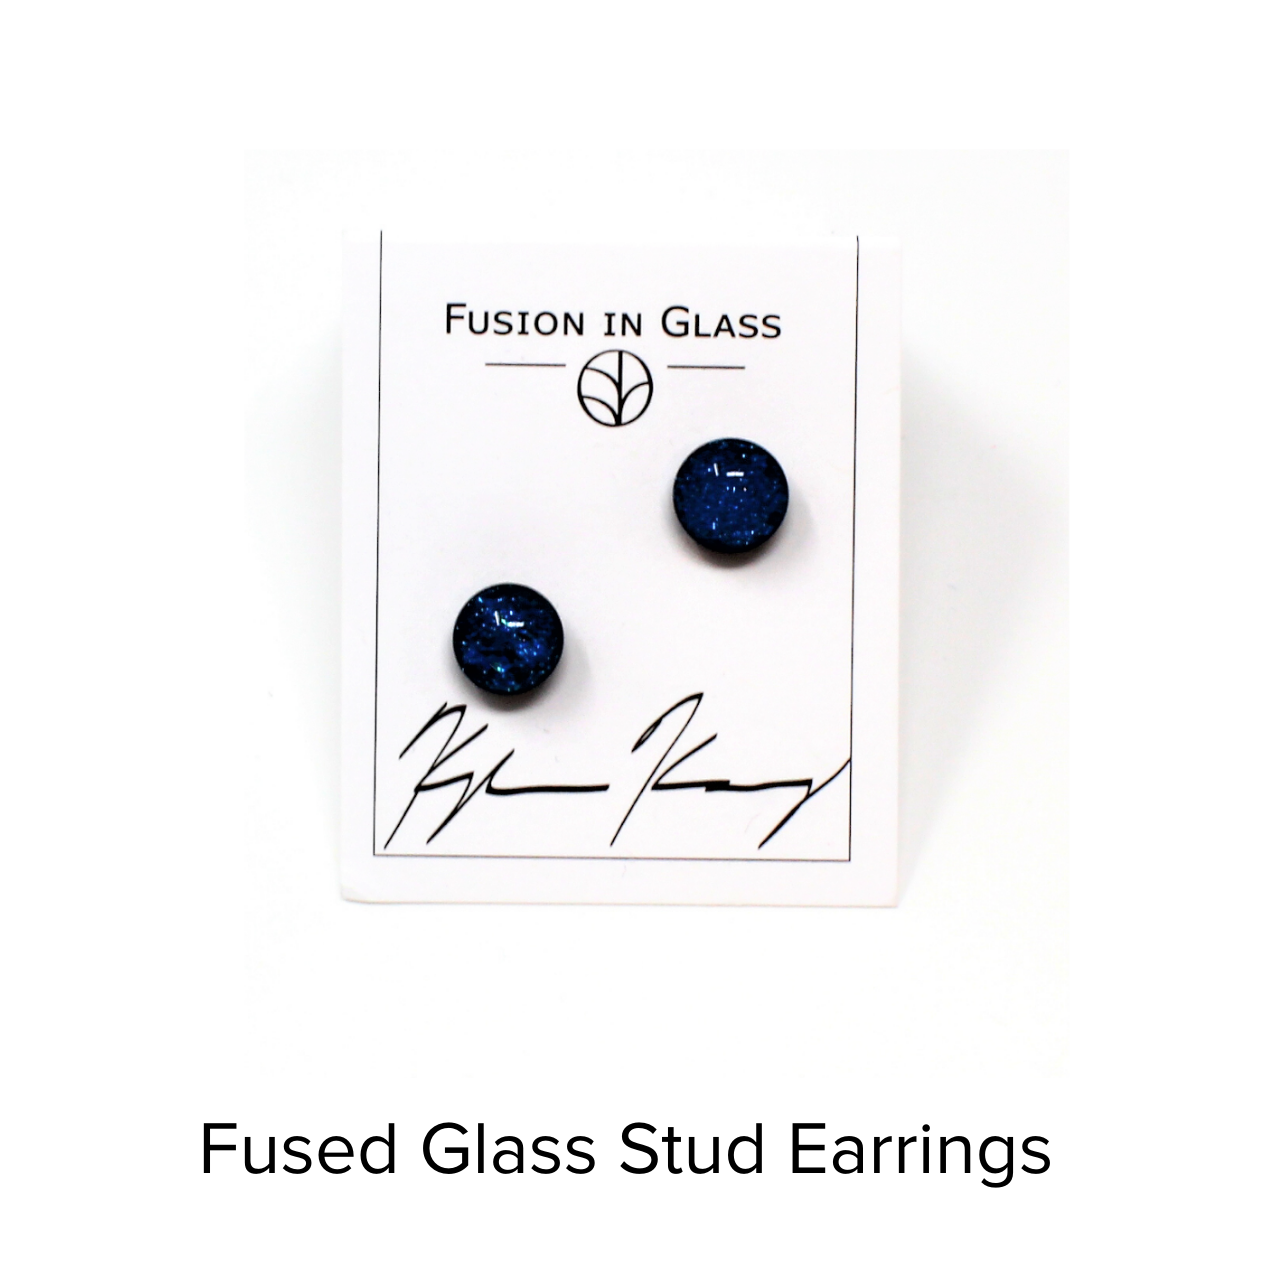 Fusion In Glass Ers Stud Fused Glass